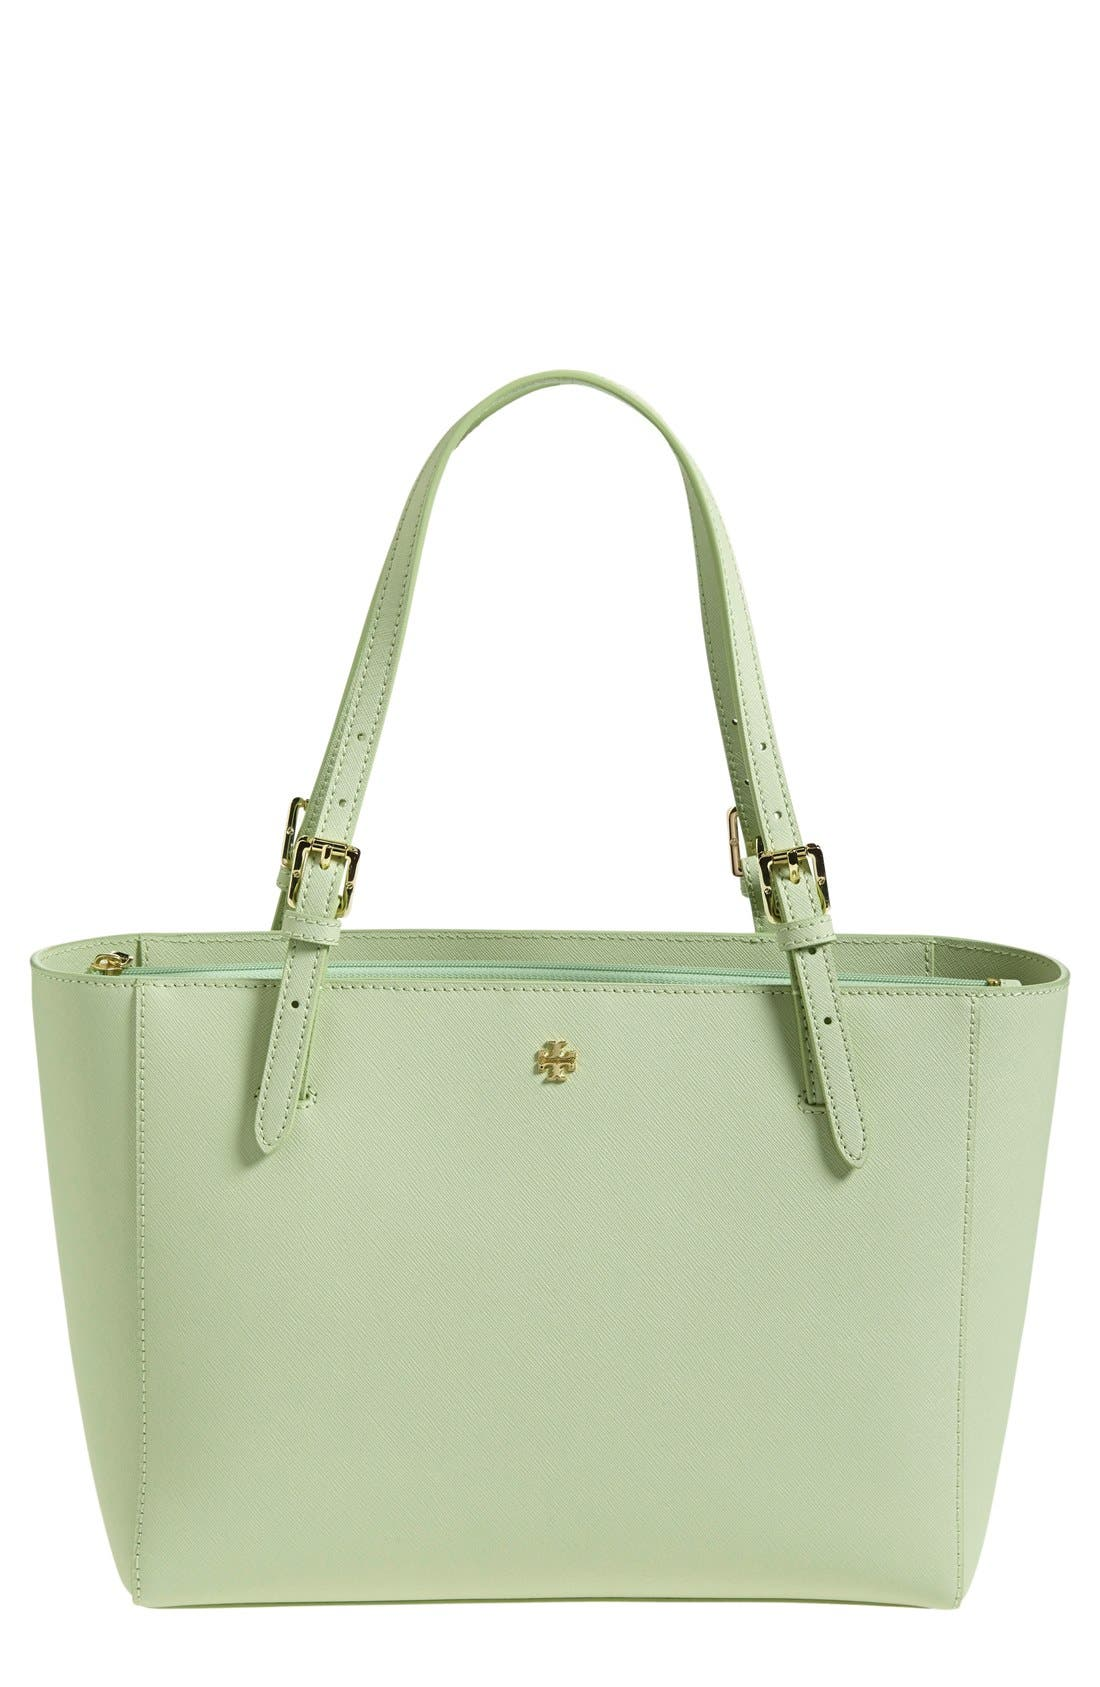 'Small York' Saffiano Leather Buckle Tote,                             Main thumbnail 8, color,